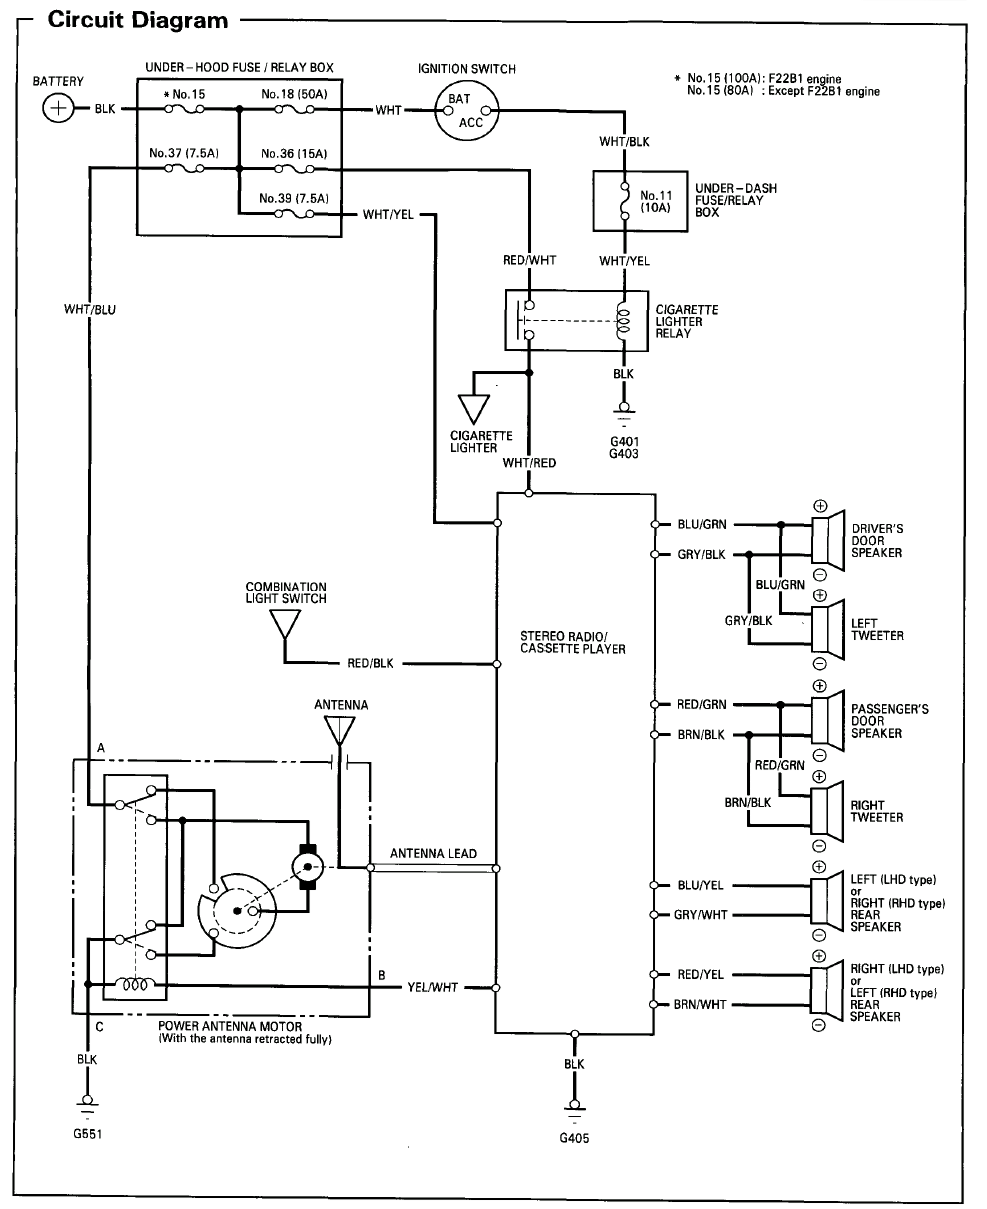 DIAGRAM] 98 Honda Accord Radio Wiring Diagram FULL Version HD Quality Wiring  Diagram - REALDIAGRAM.PACHUKA.ITpachuka.it